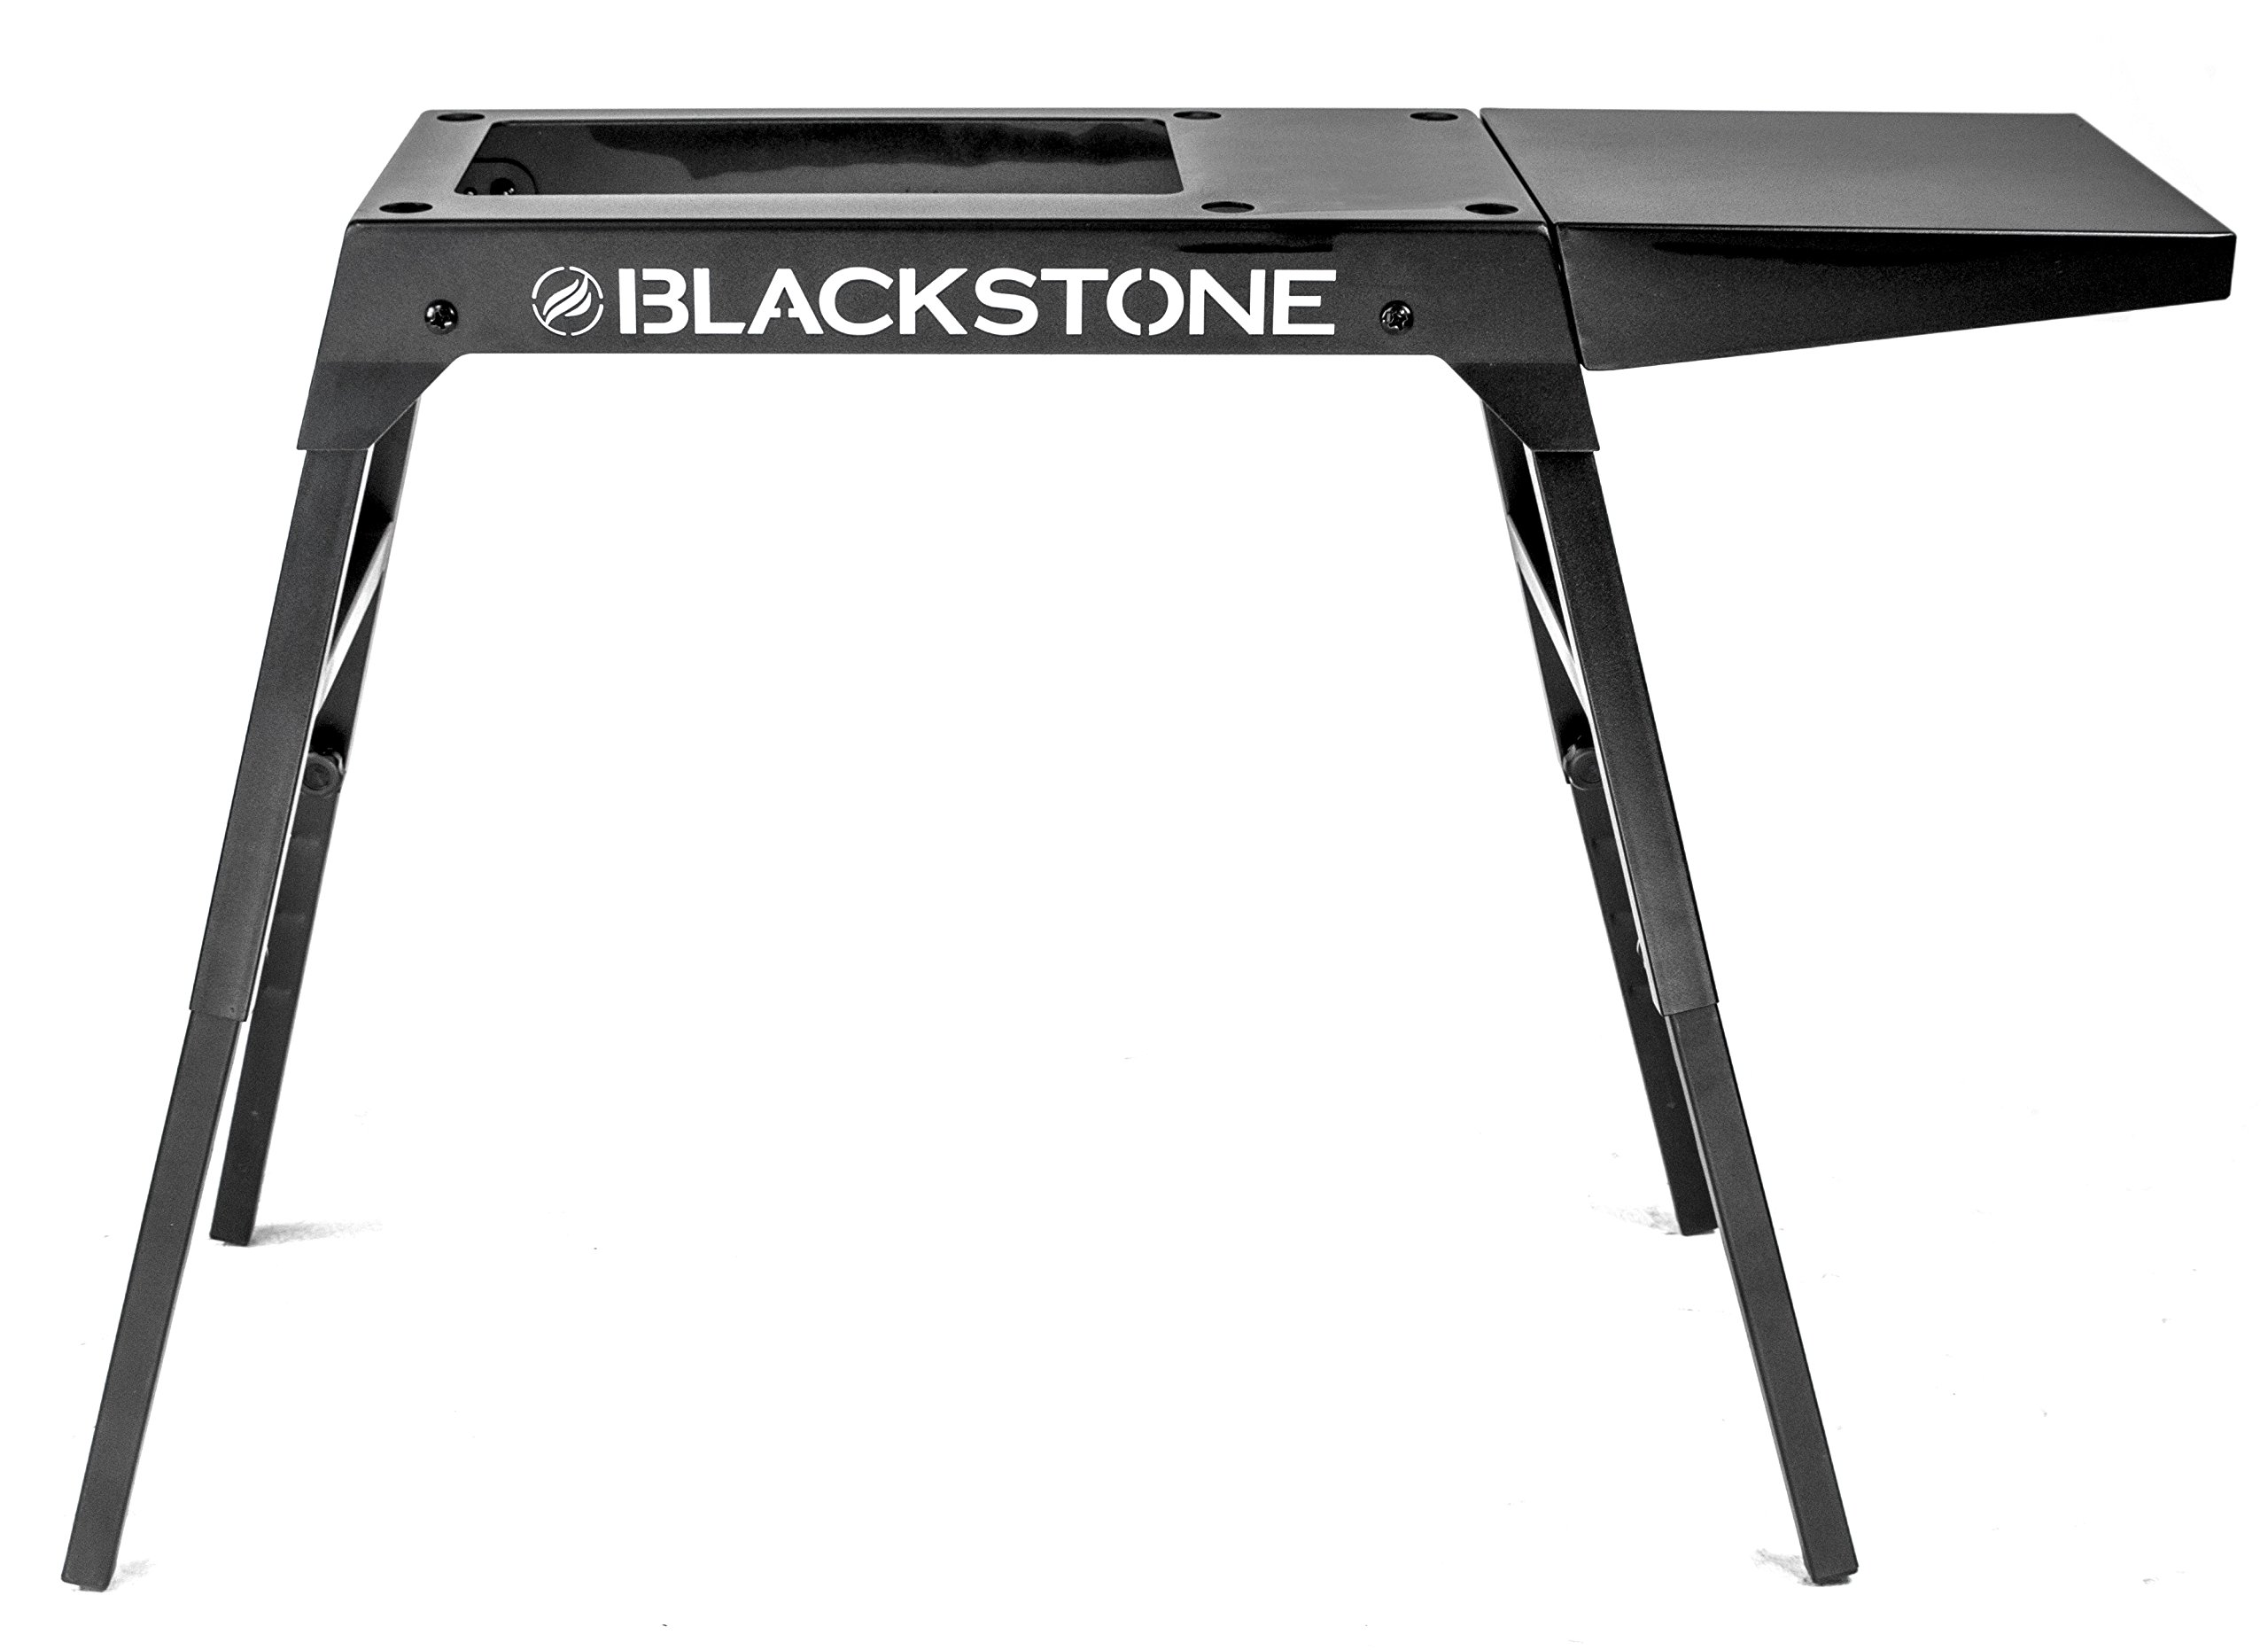 Blackstone Signature Griddle Accessories - Custom Designed for Blackstone 17 inch/22 inch Tabletop Grill - Portable Griddle Table, Legs and Shelf - Adjustable Legs - Camping Table - Black by Blackstone